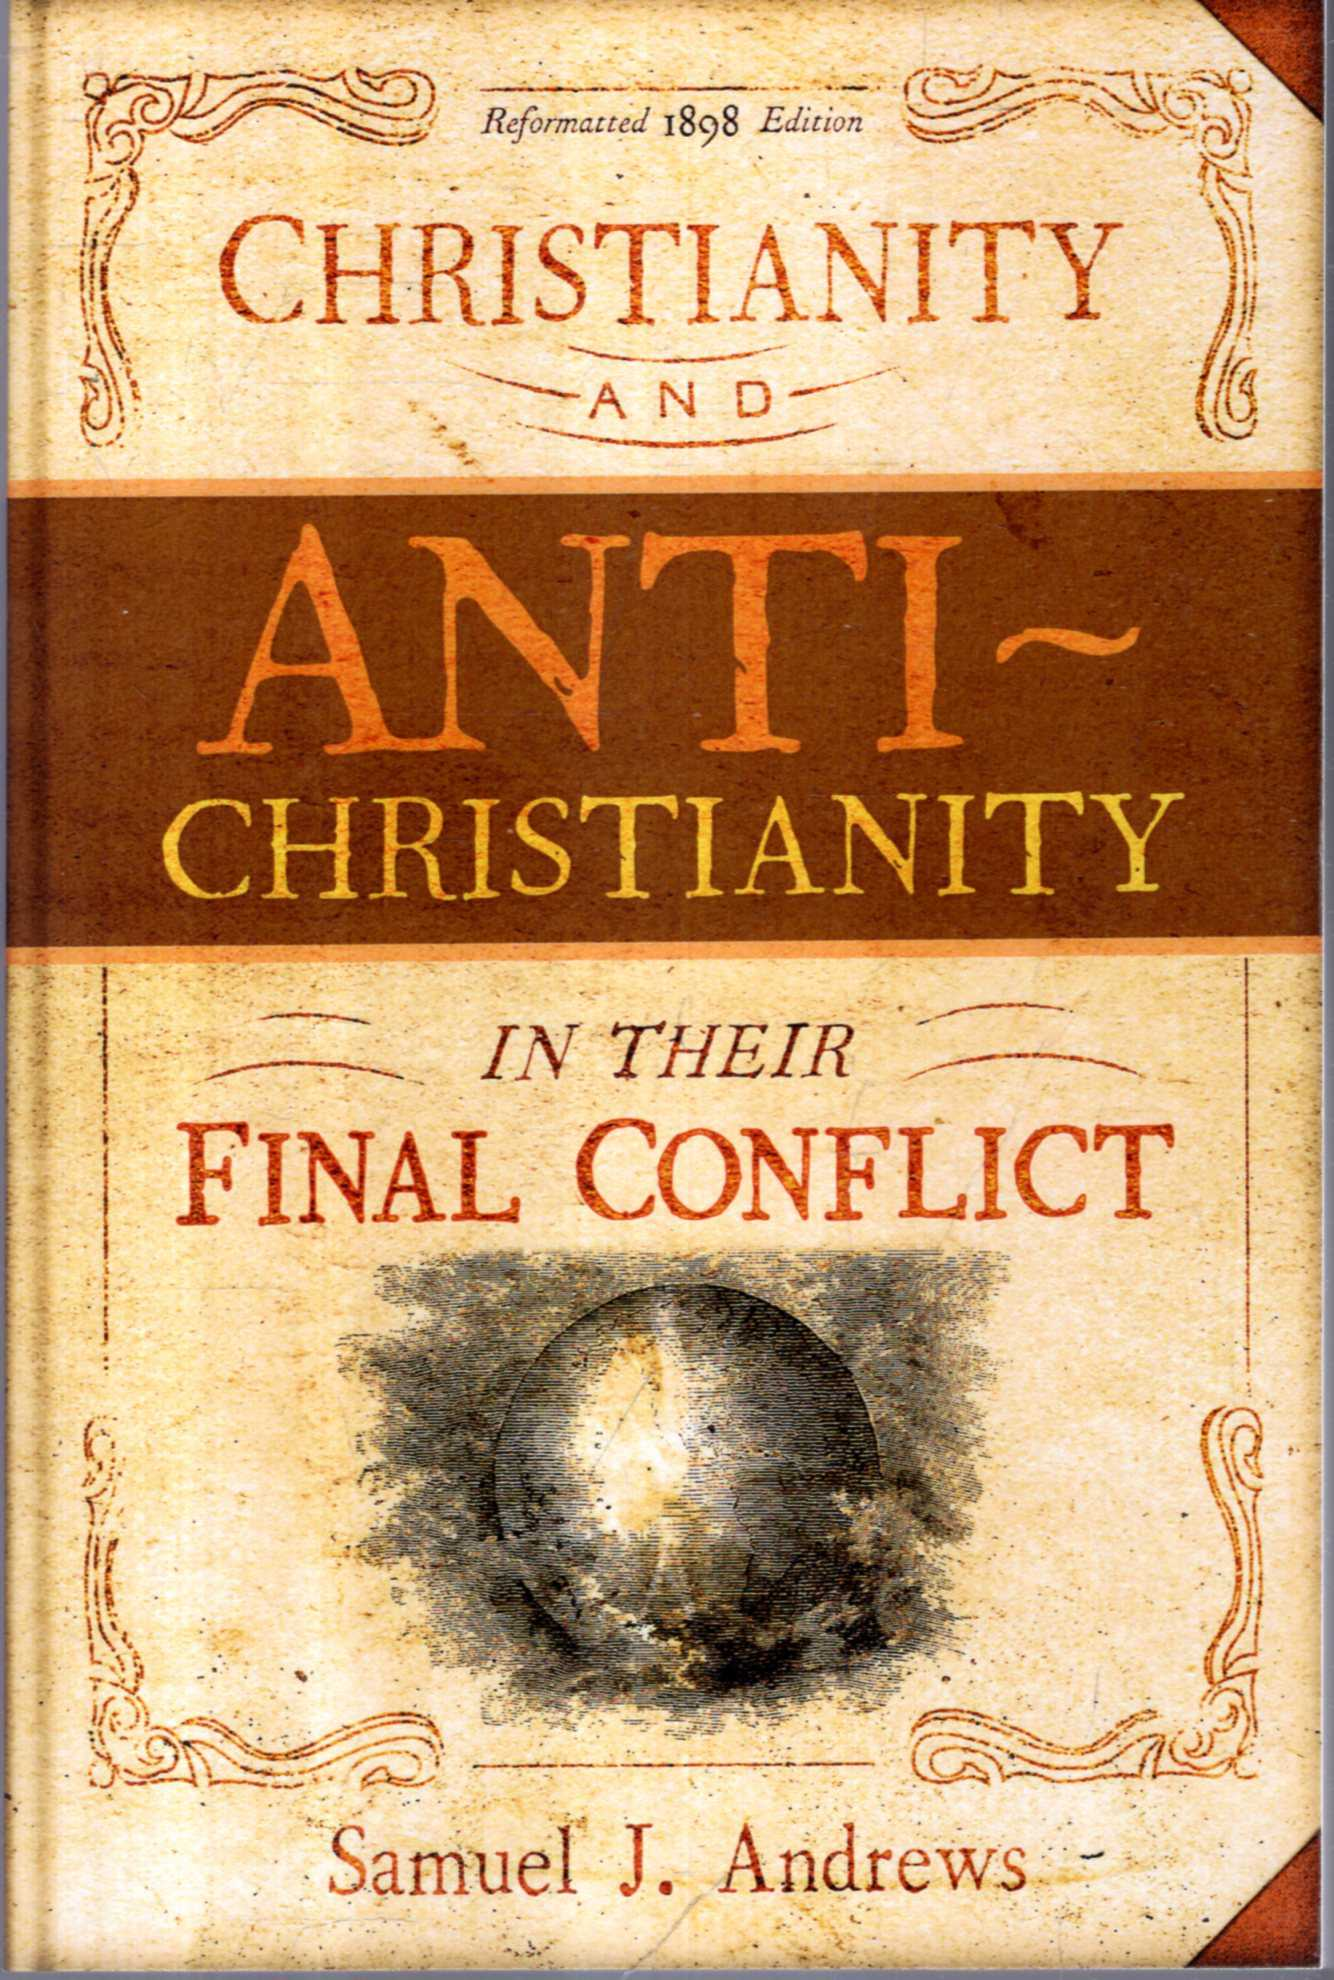 Image for Christianity and Anti-Christianity in their Final Conflict